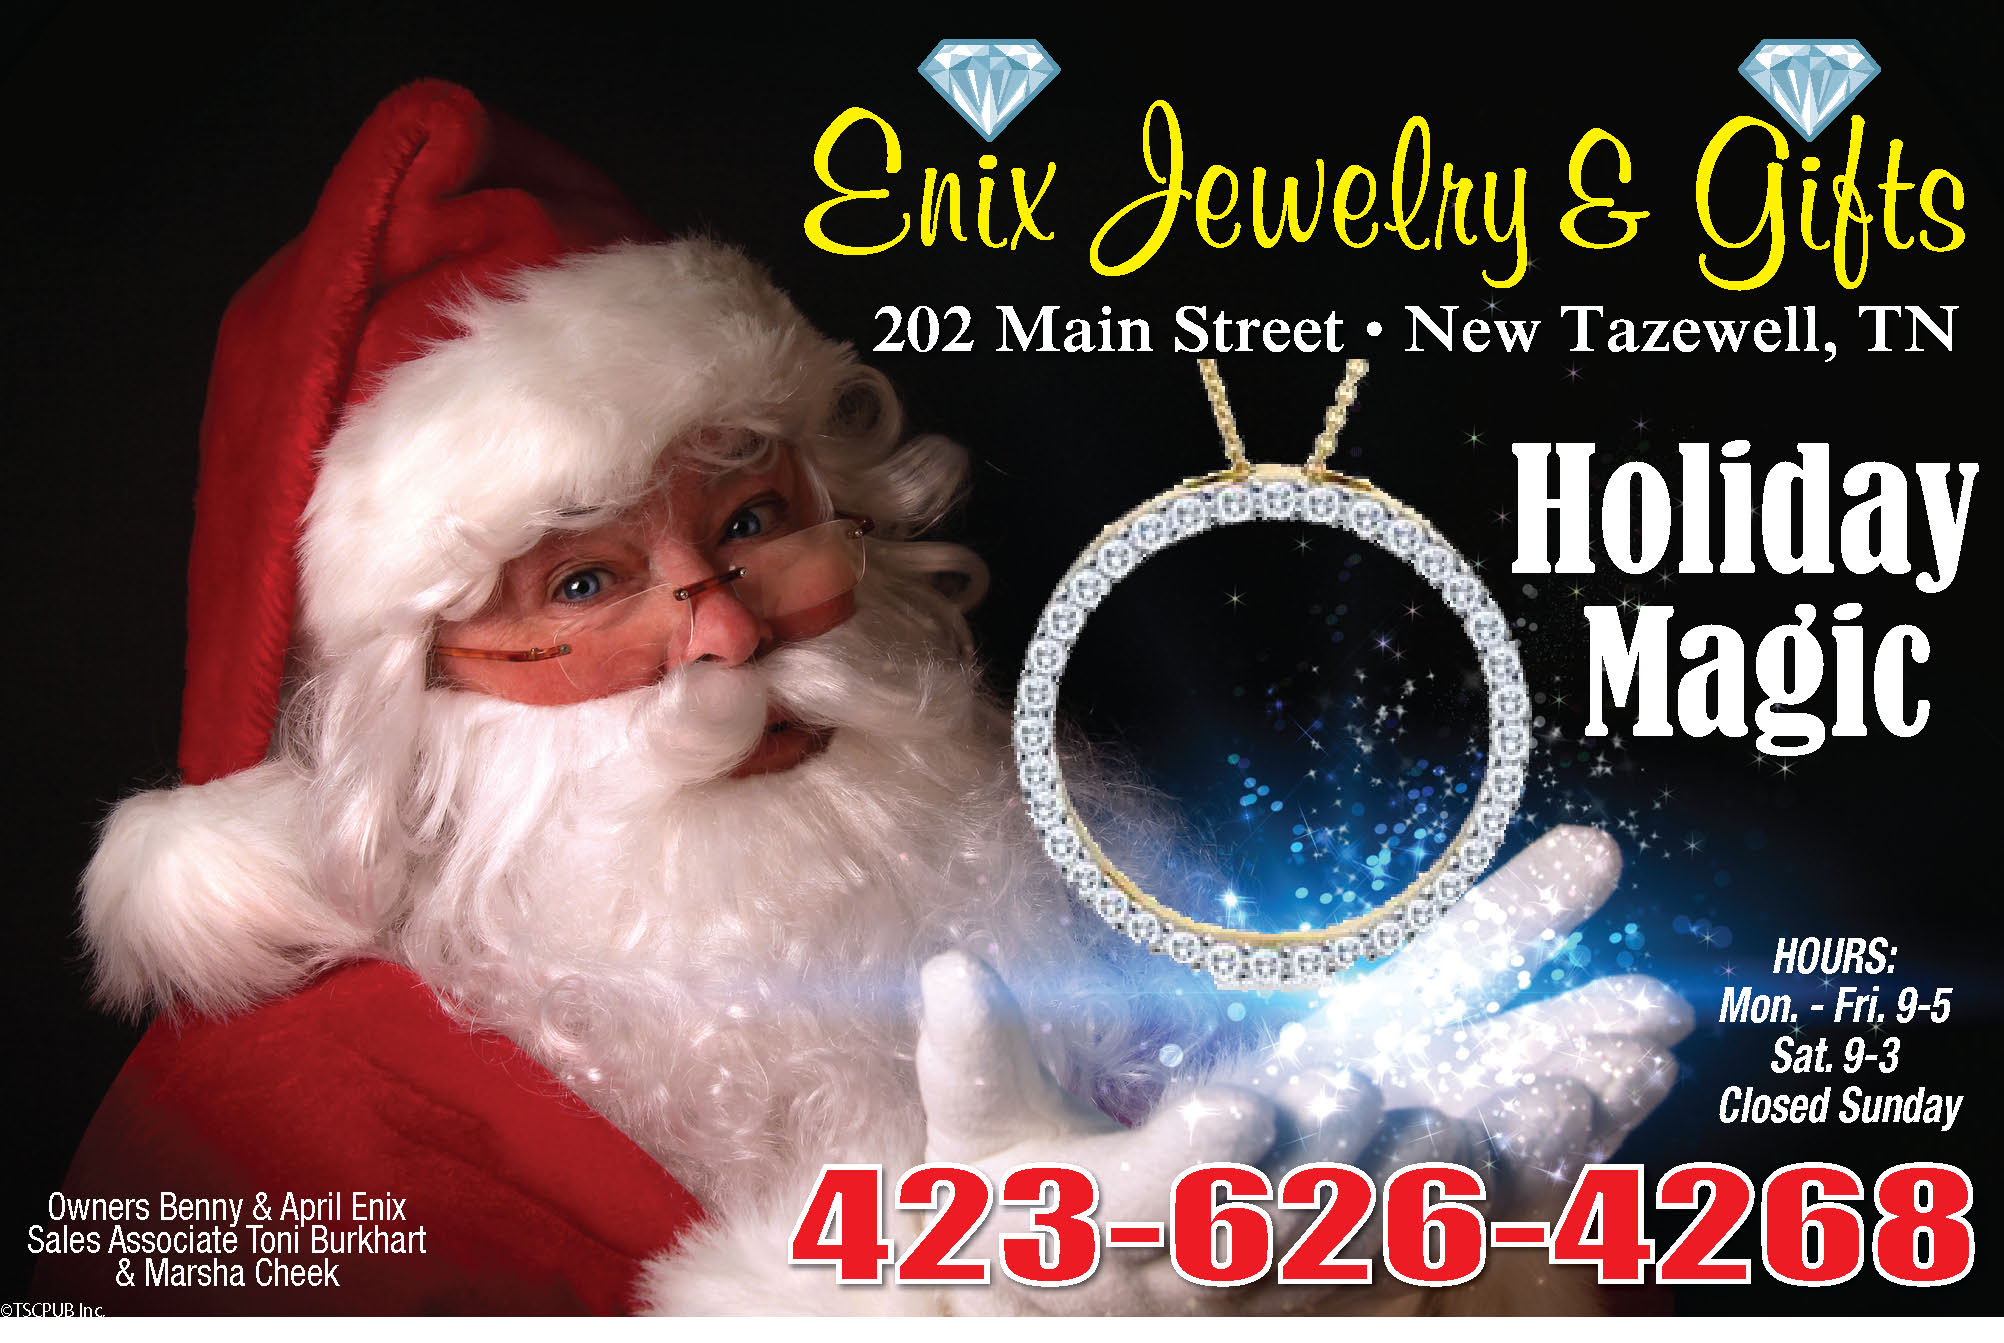 Enix Jewelry & Gifts Ad